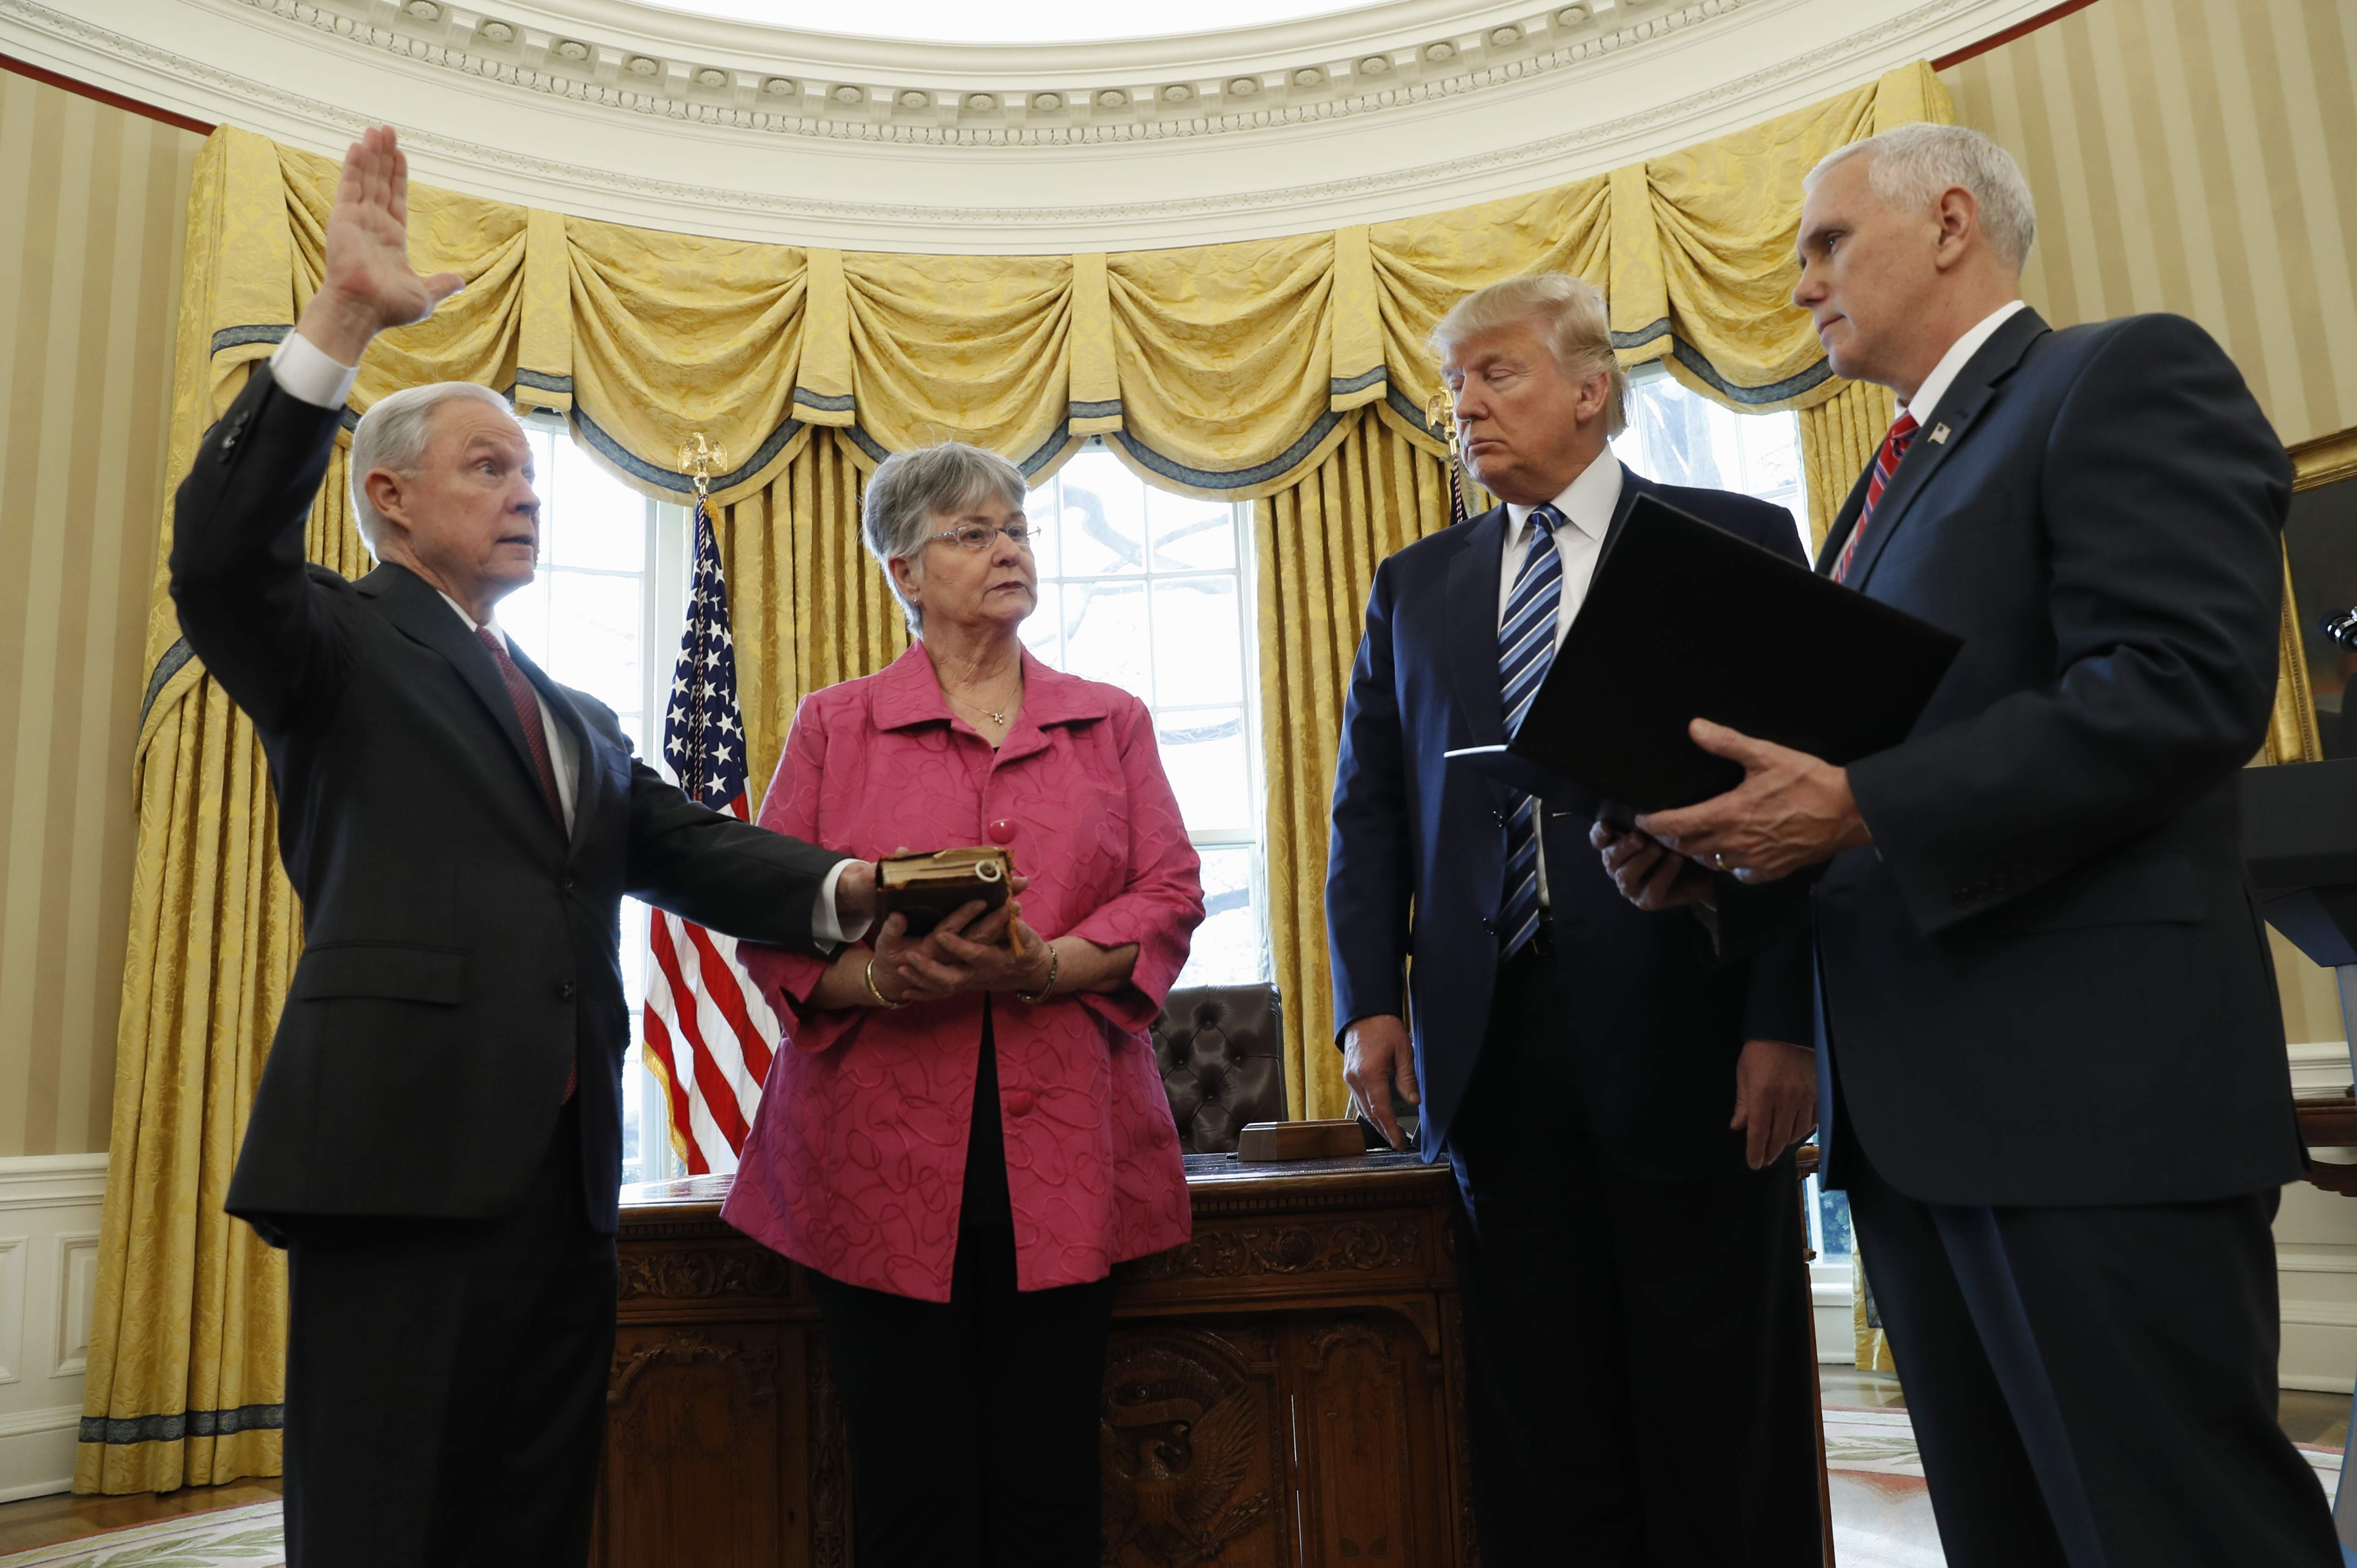 DAY 21 - In this Feb. 9, 2017, file photo, President Donald Trump watches as Vice President Mike Pence administers the oath of office to Attorney General Jeff Sessions, accompanied by his wife Mary, in the Oval Office of the White House in Washington. (AP Photo/Pablo Martinez Monsivais, File)